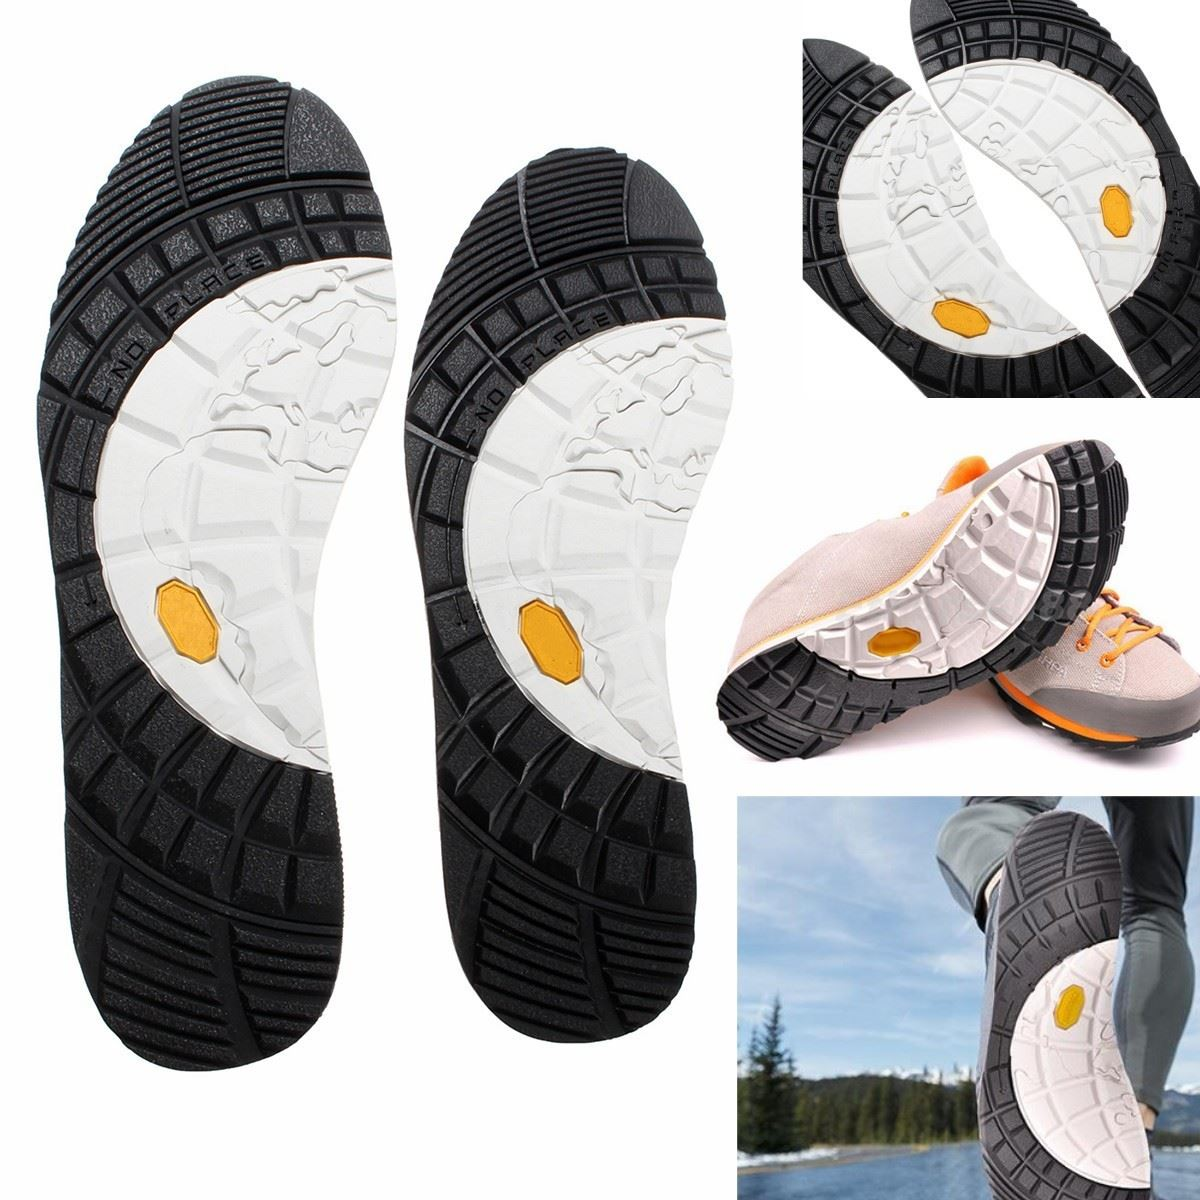 1Pair Rubber Stick On Soles, Slitstarkt Anti-Slip Lim på Full Insoles Sko Reparation Utbyte DIY, Mats Skridsskydd